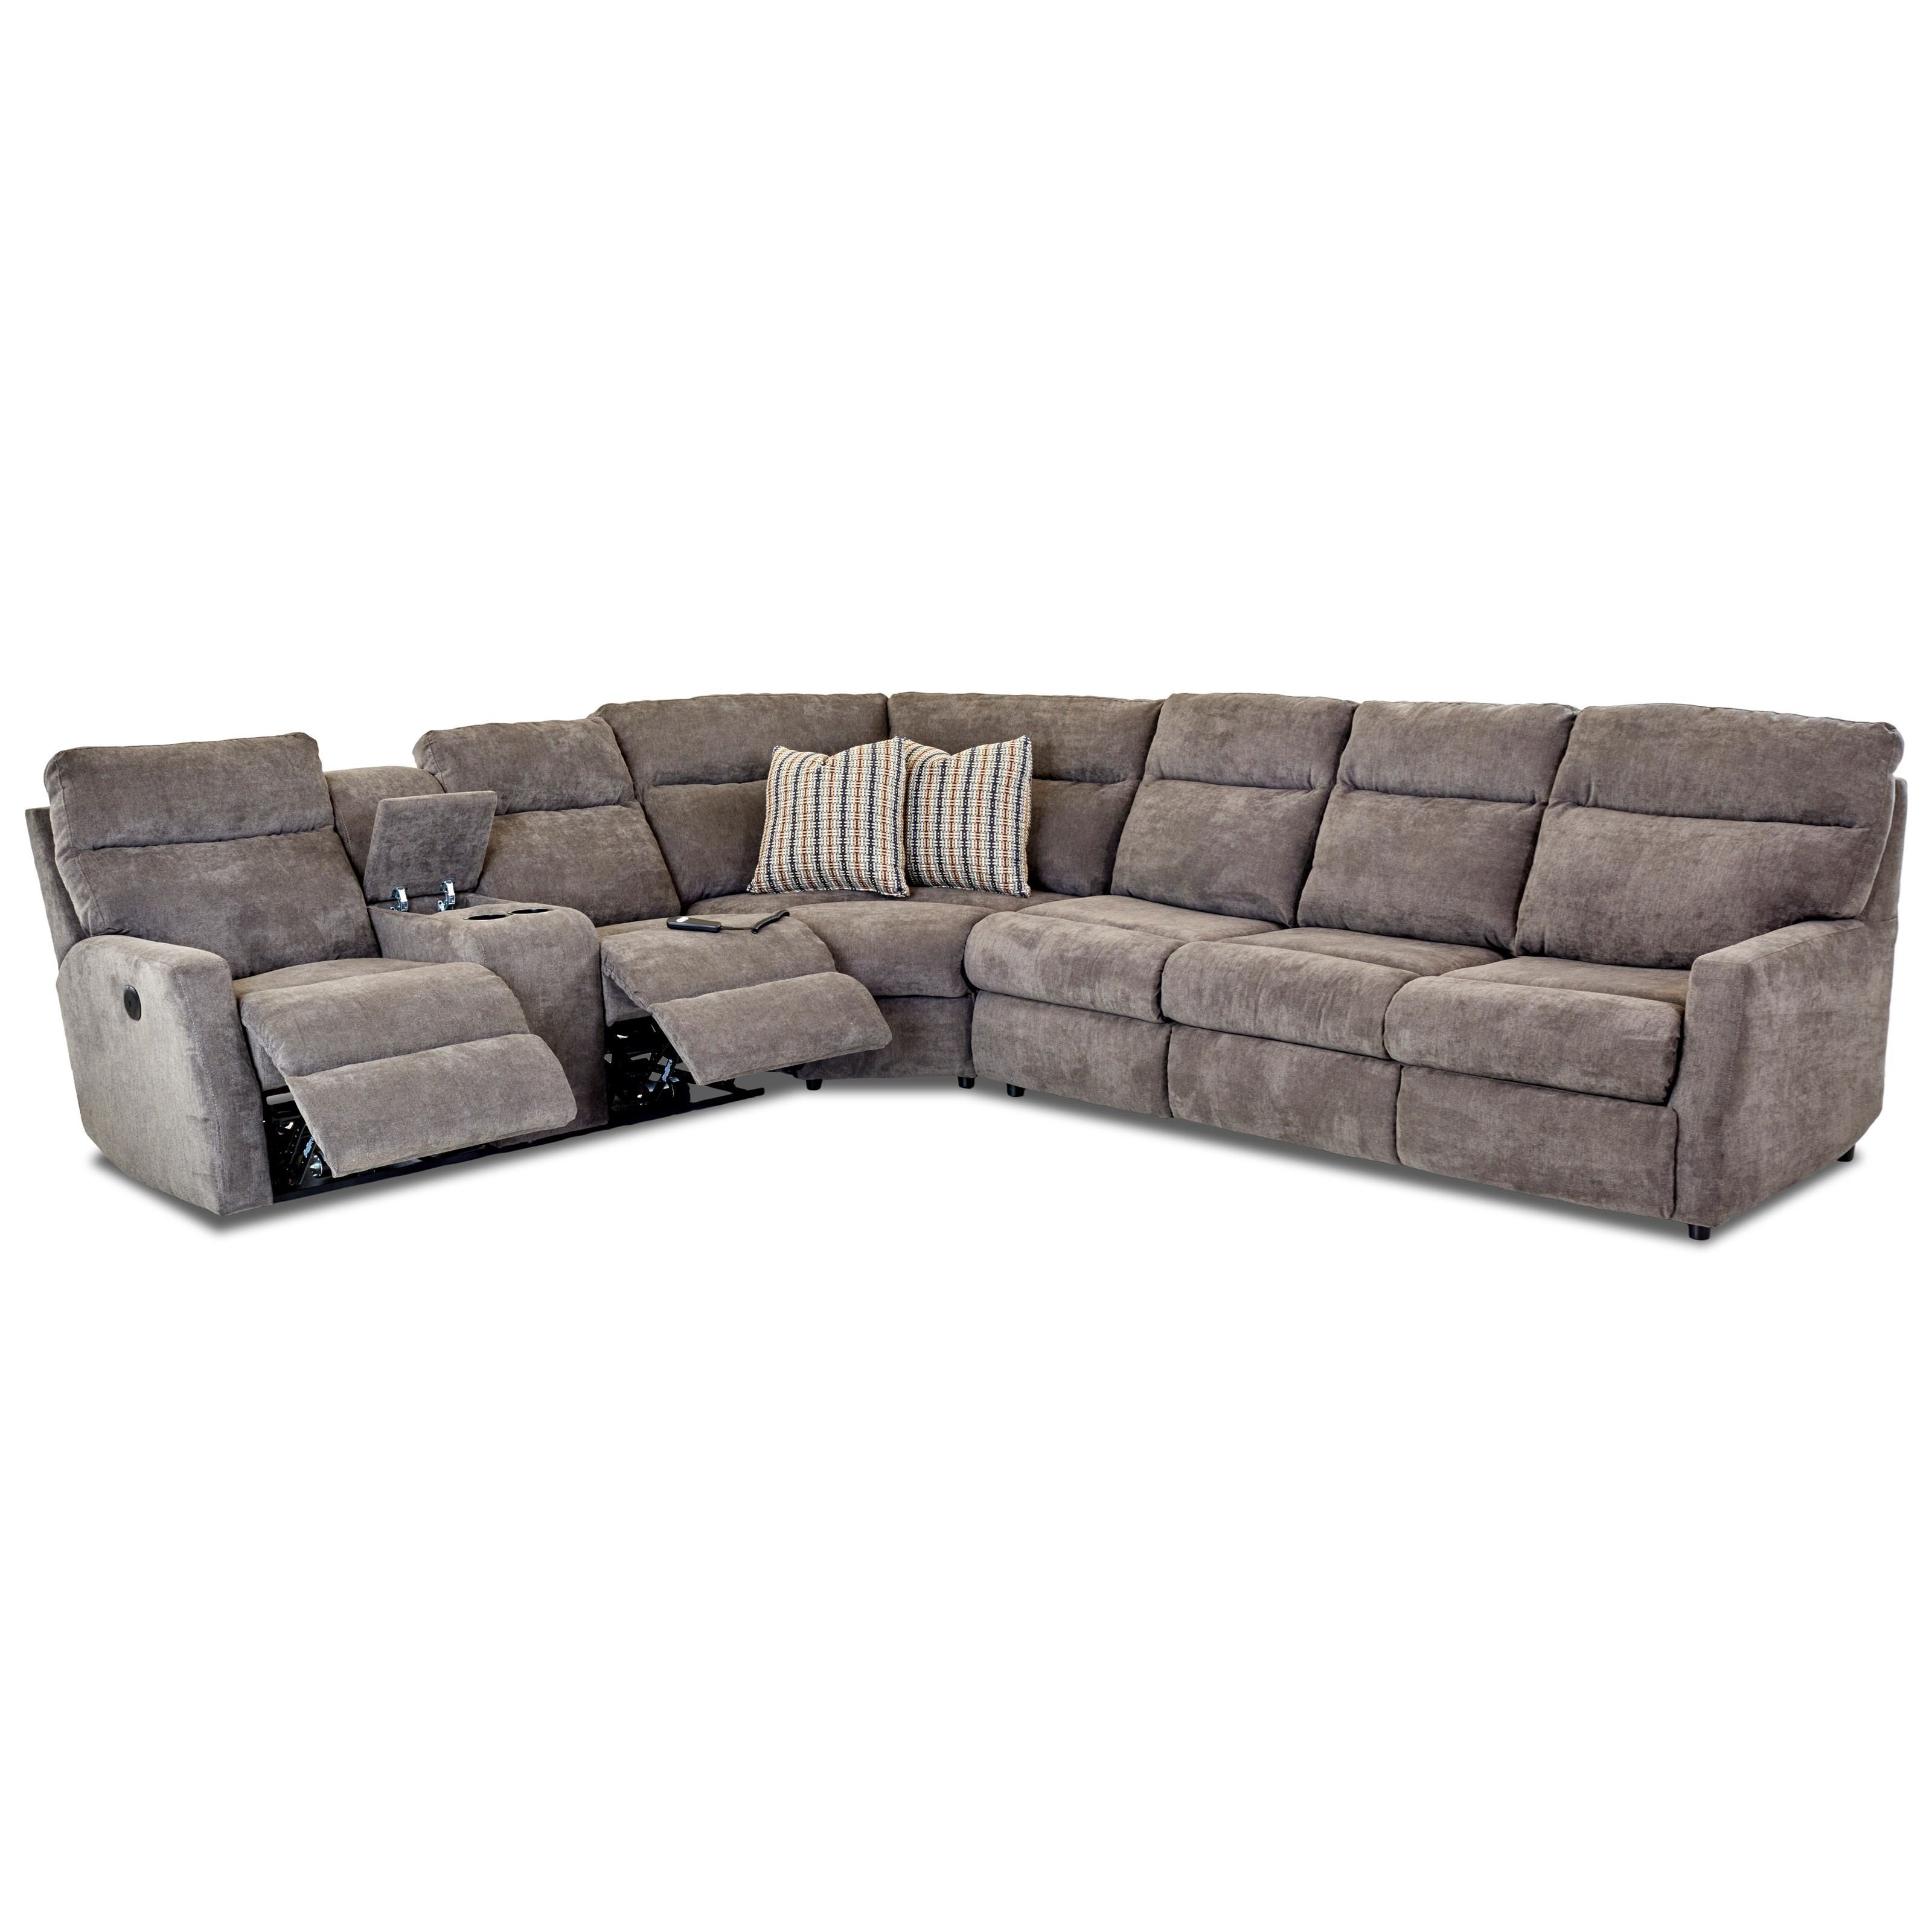 5-Seat Reclining Sectional Sofa with Right Arm Facing Innerspring Sleeper Mattress